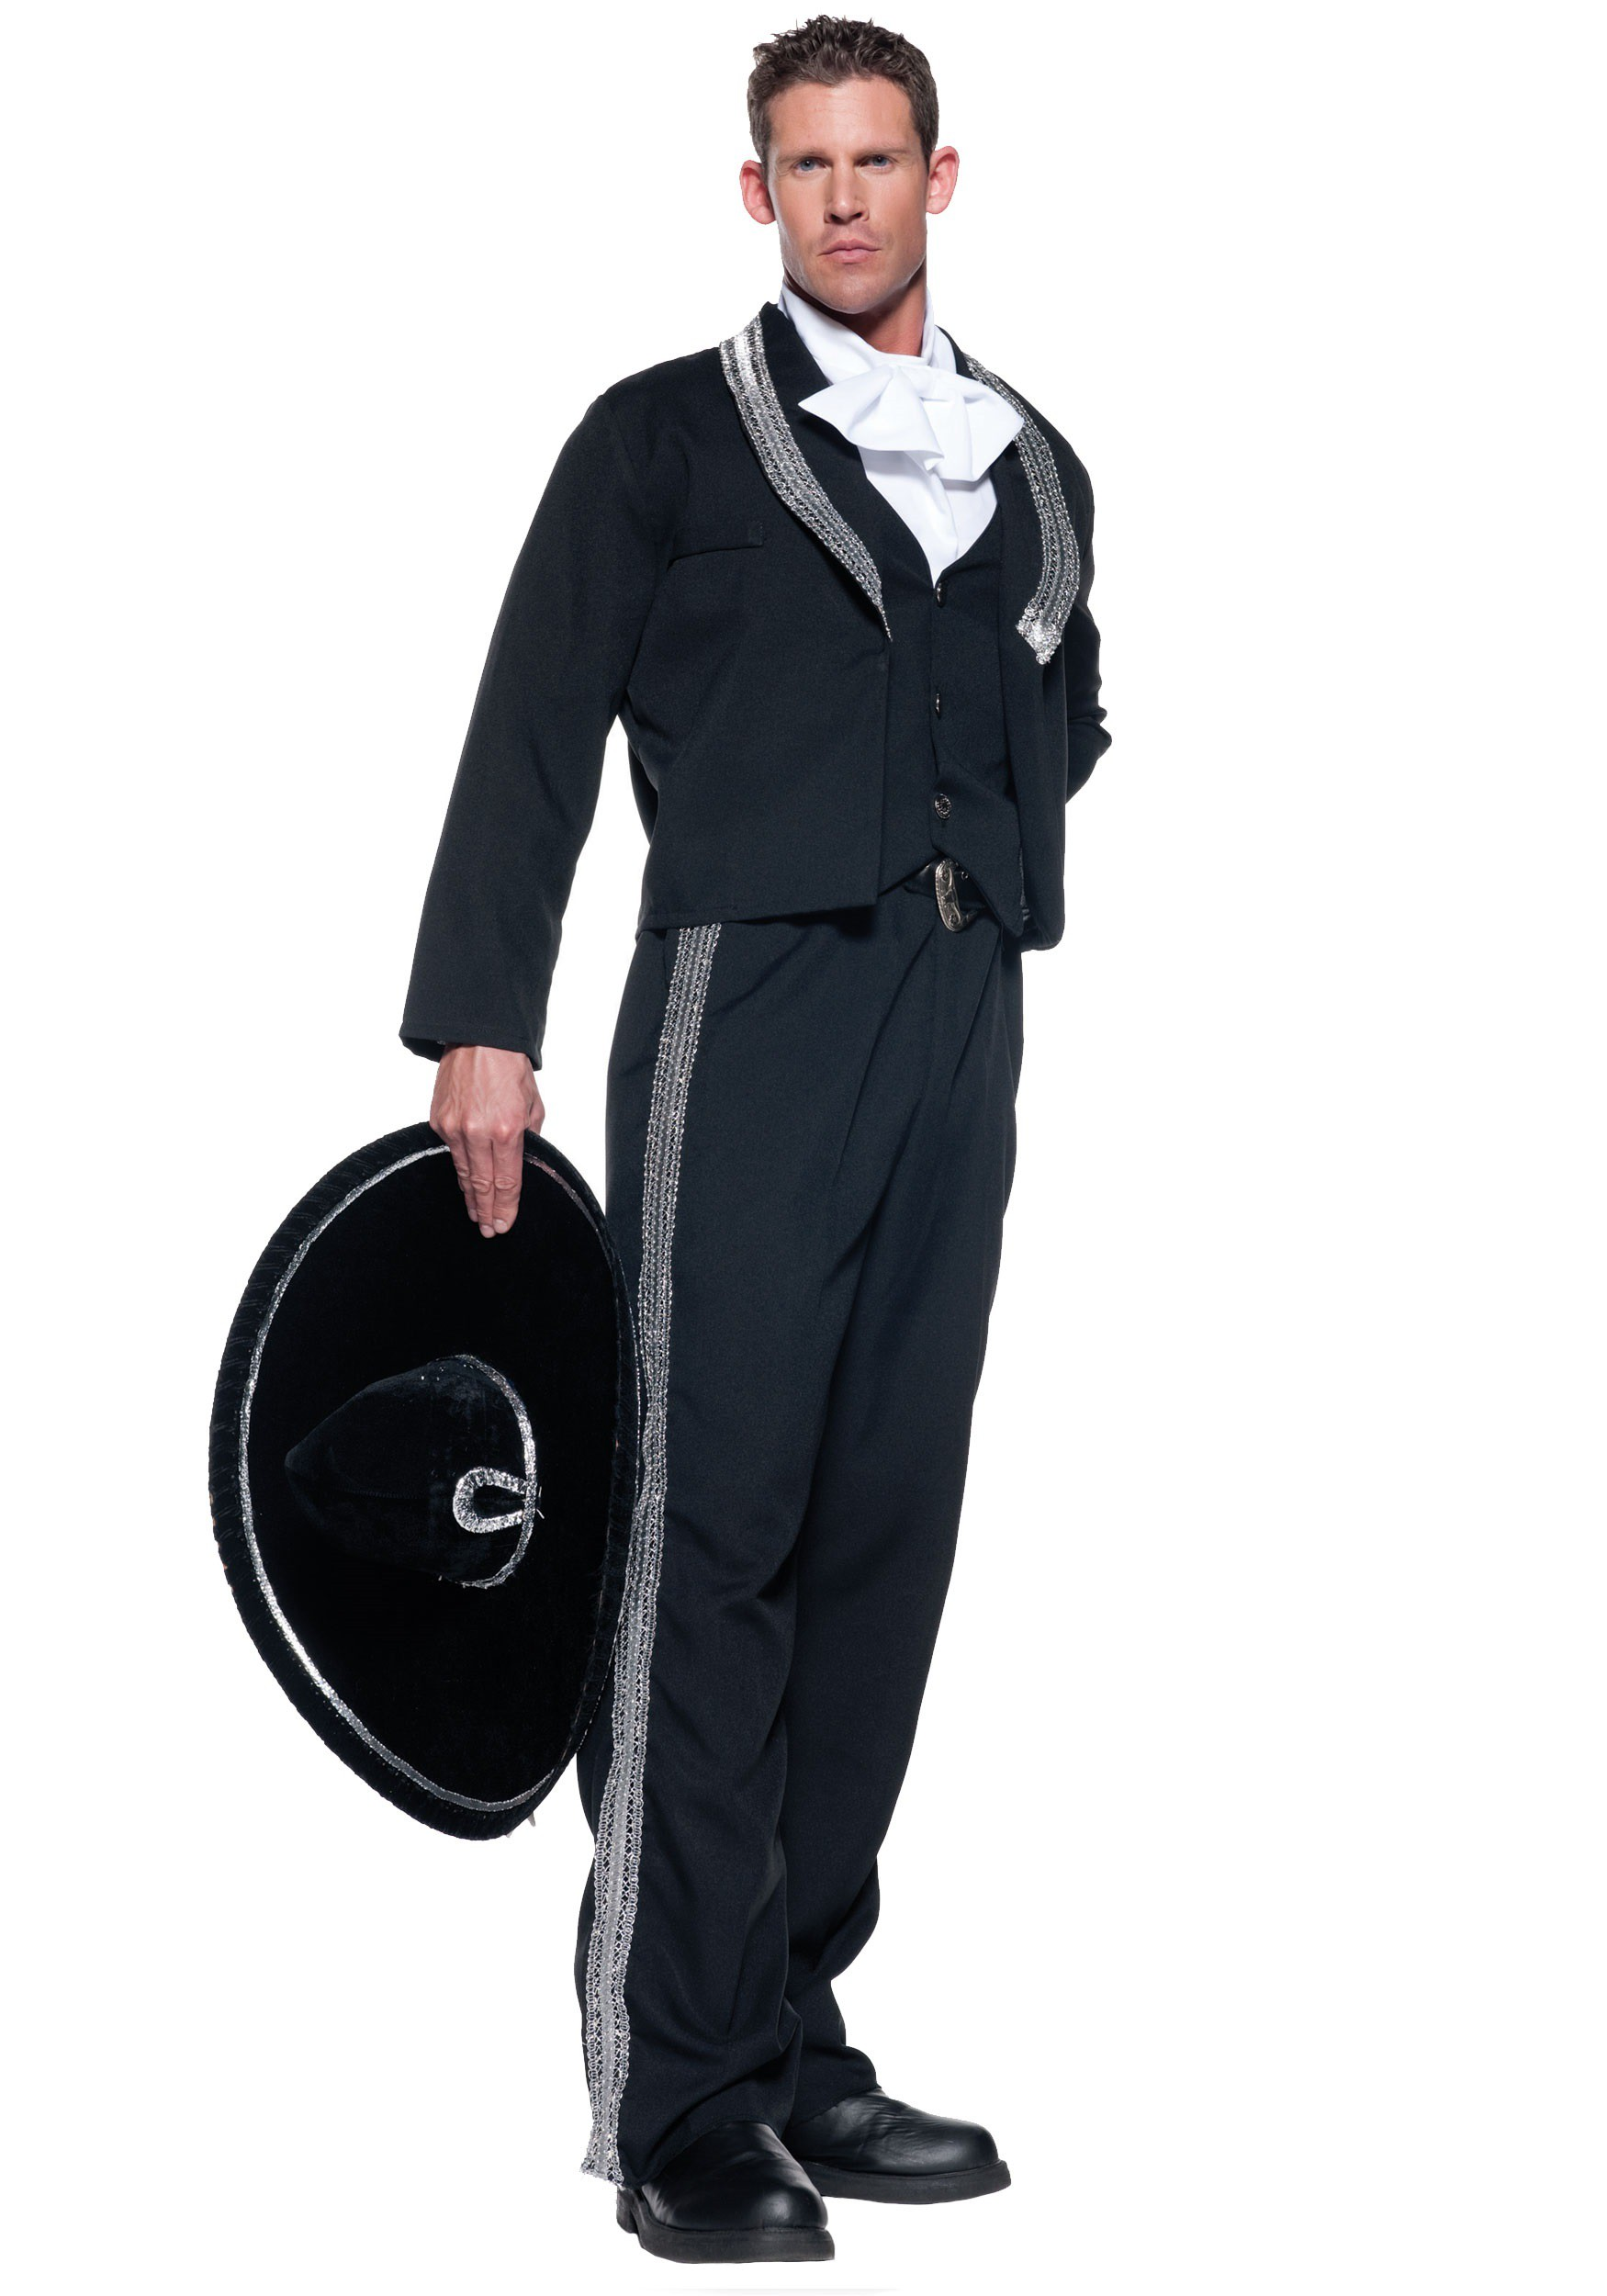 sc 1 st  Halloween Costumes : mariachi costume  - Germanpascual.Com